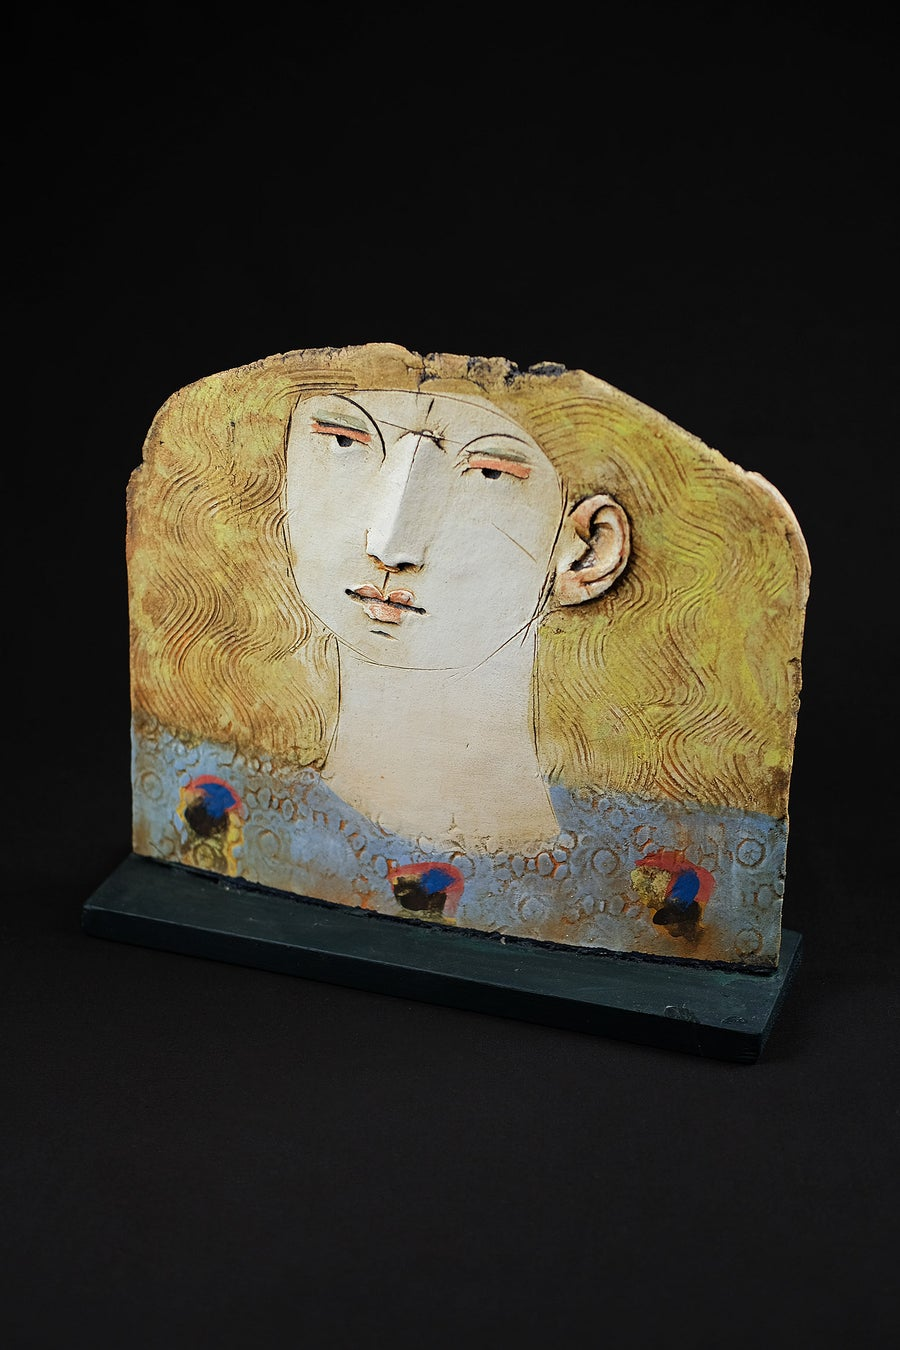 Image of CHRISTY KEENEY - 'WOMAN OF GALWAY' SCULPTURE